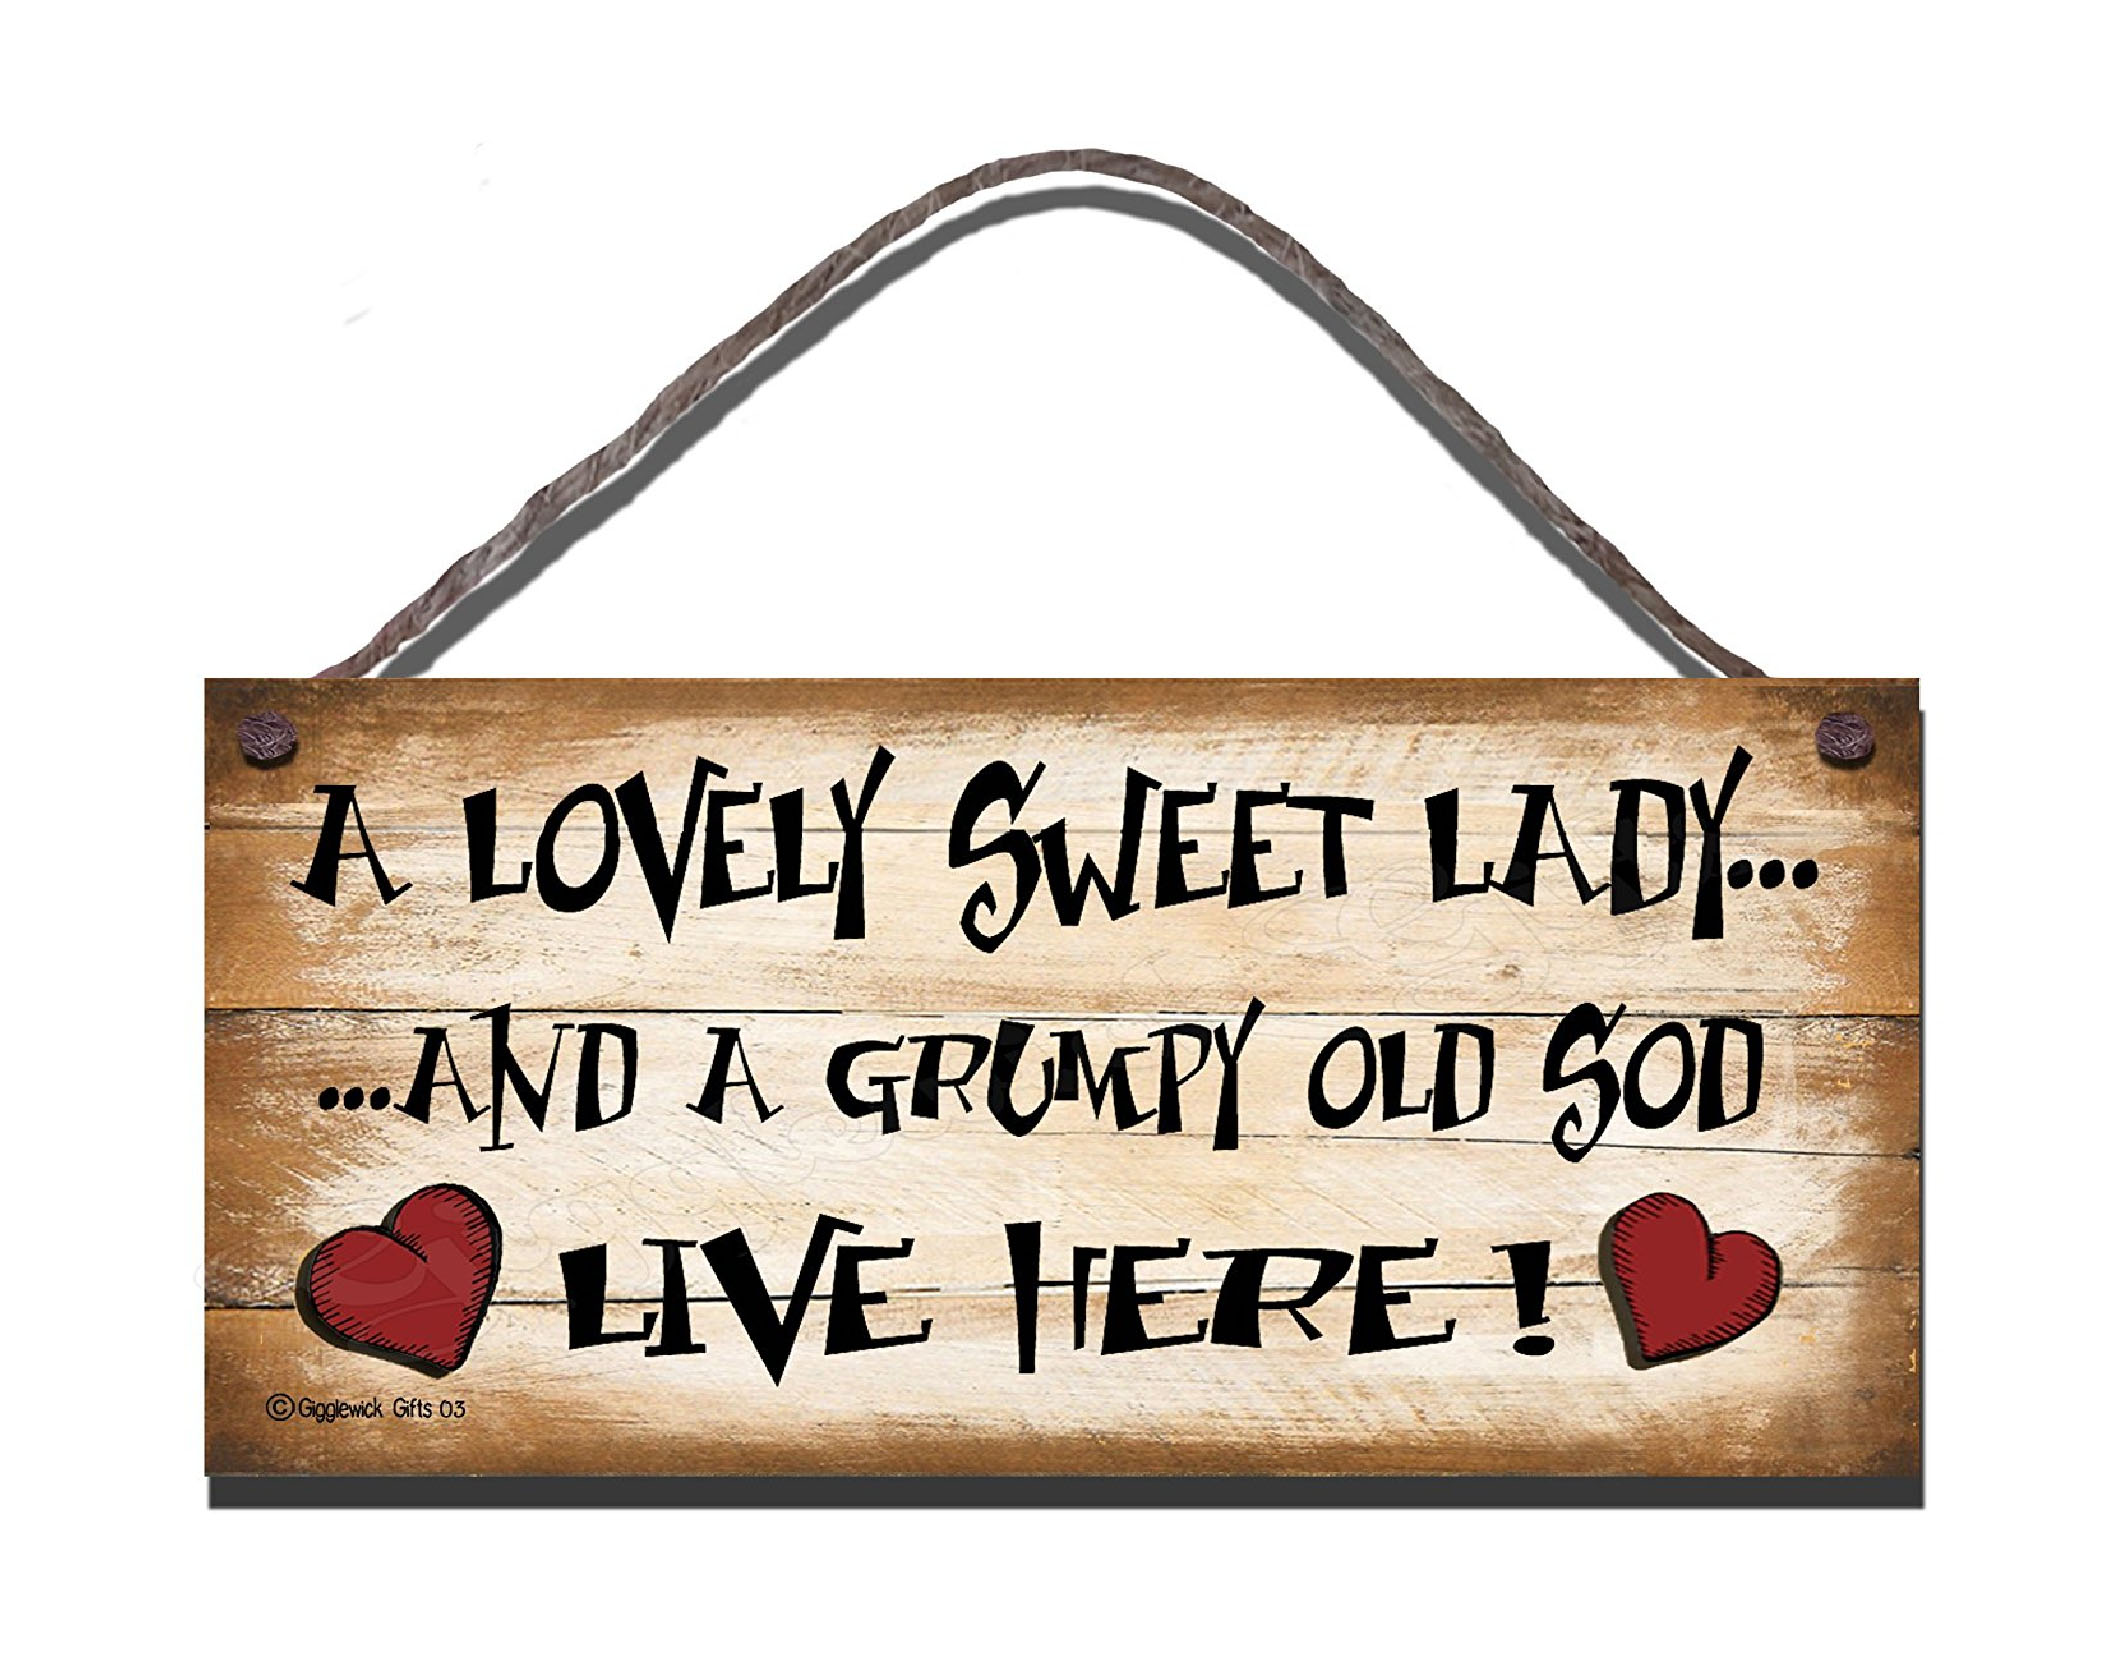 Grumpy S40 Wooden Sign S40 3 50 Gigglewick Gifts Funny